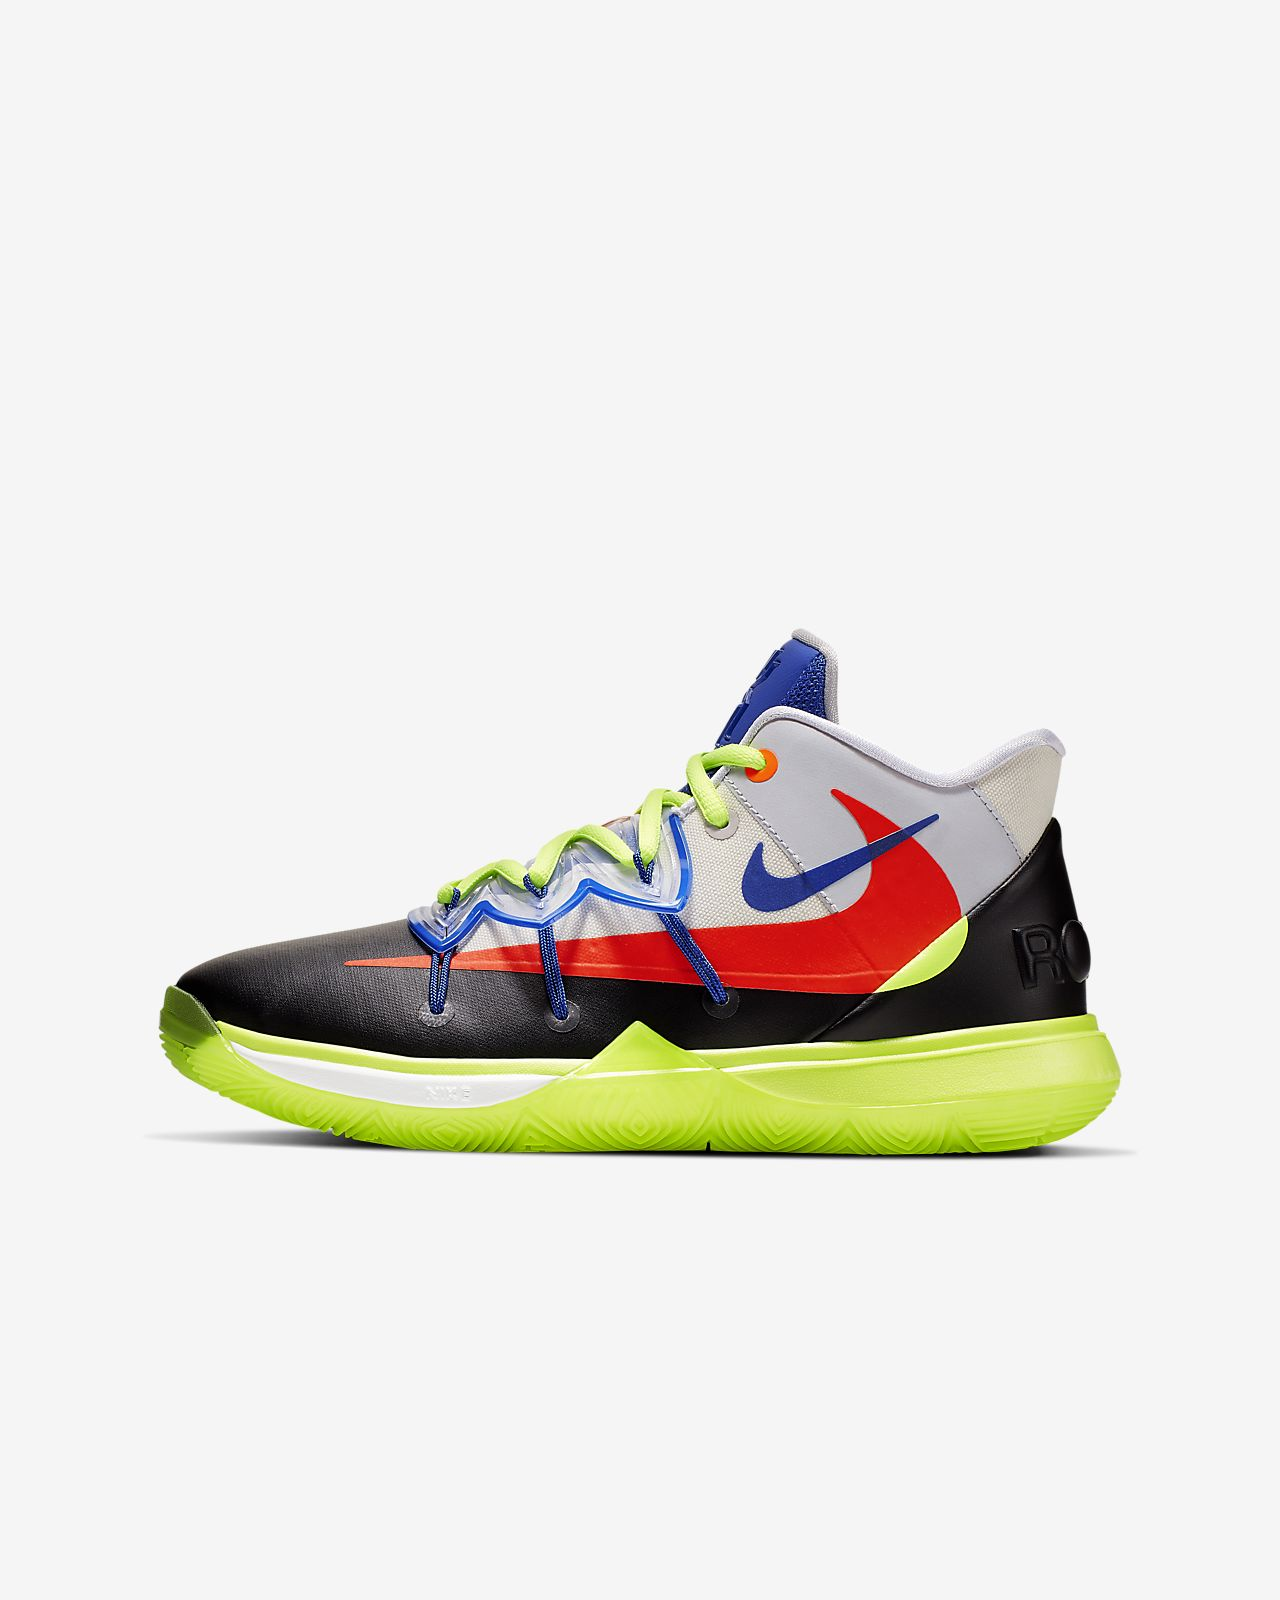 huge selection of cdae4 2fec7 ... Kyrie 5 x ROKIT All Star Big Kids  Shoe